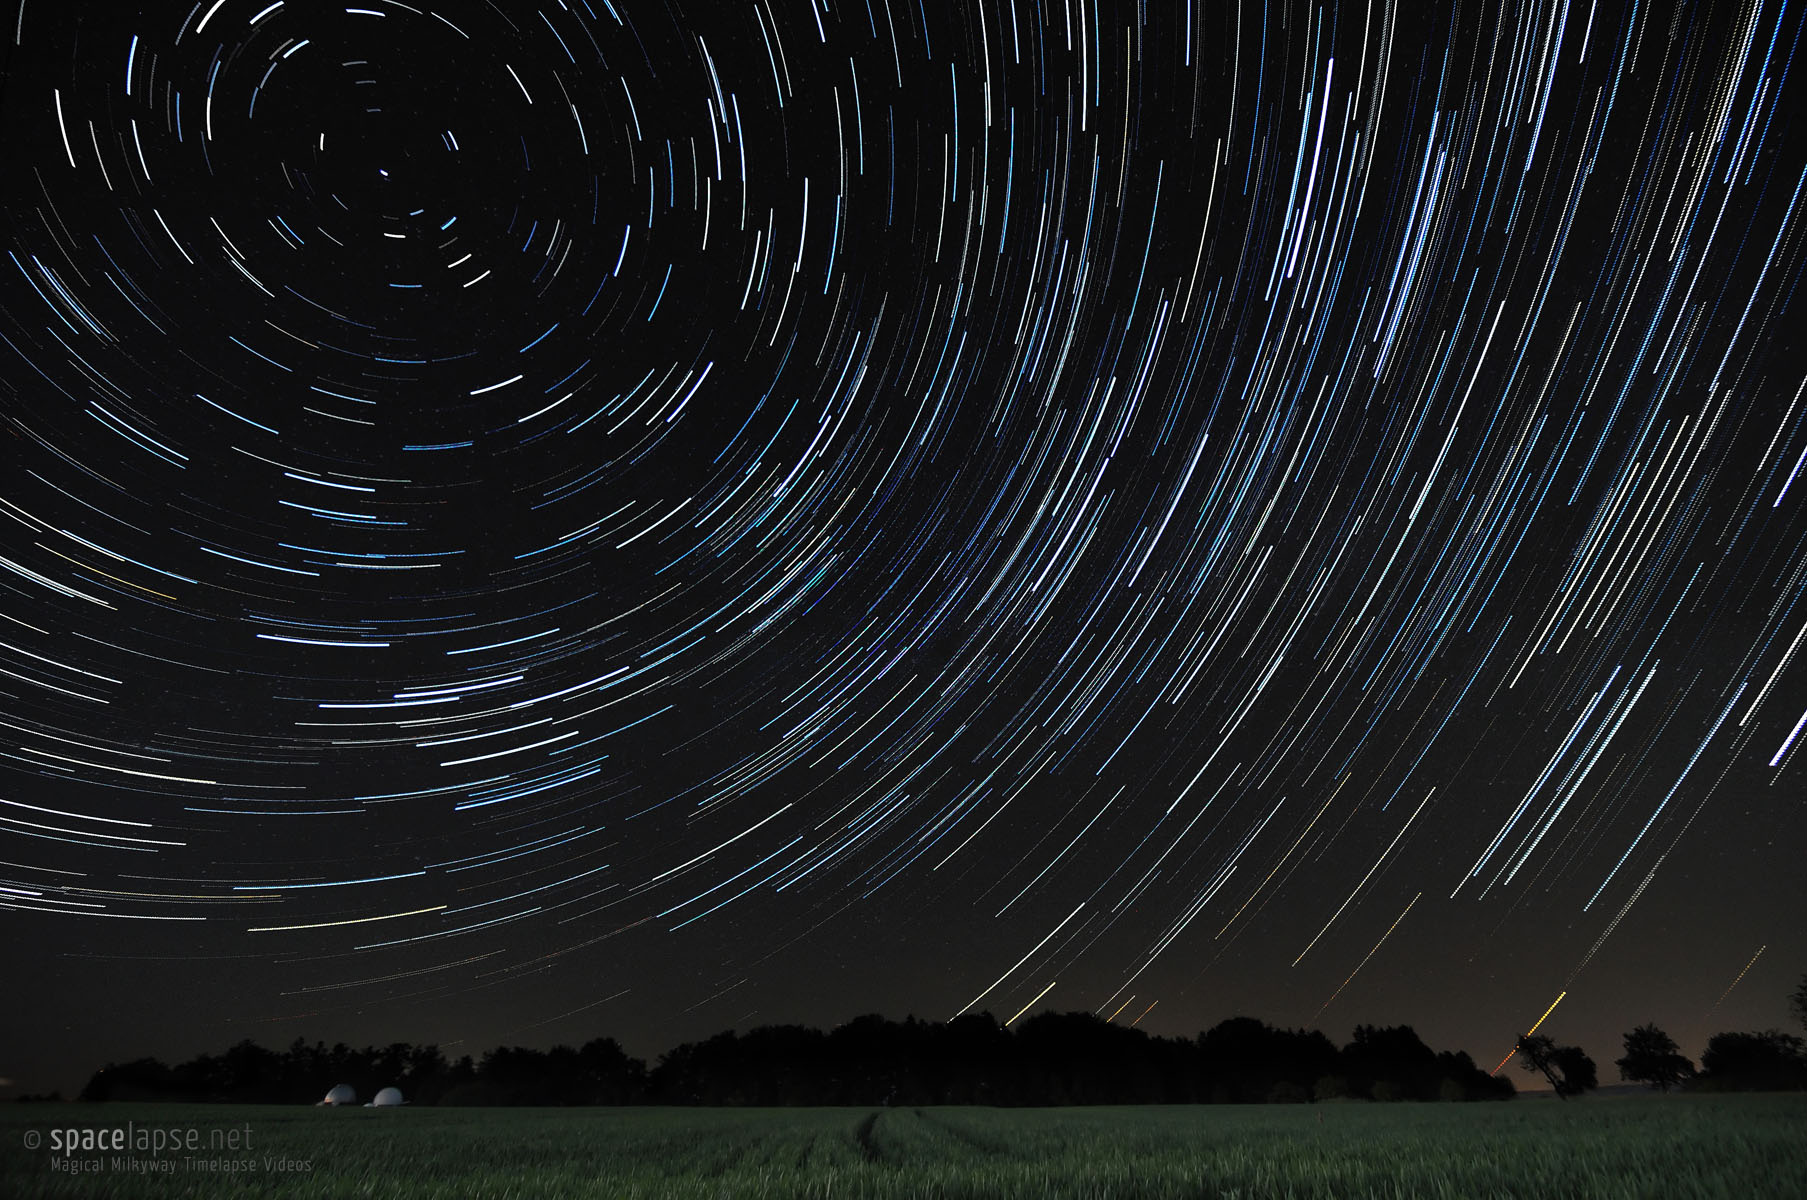 Startrails - At the Welzheim Observatory